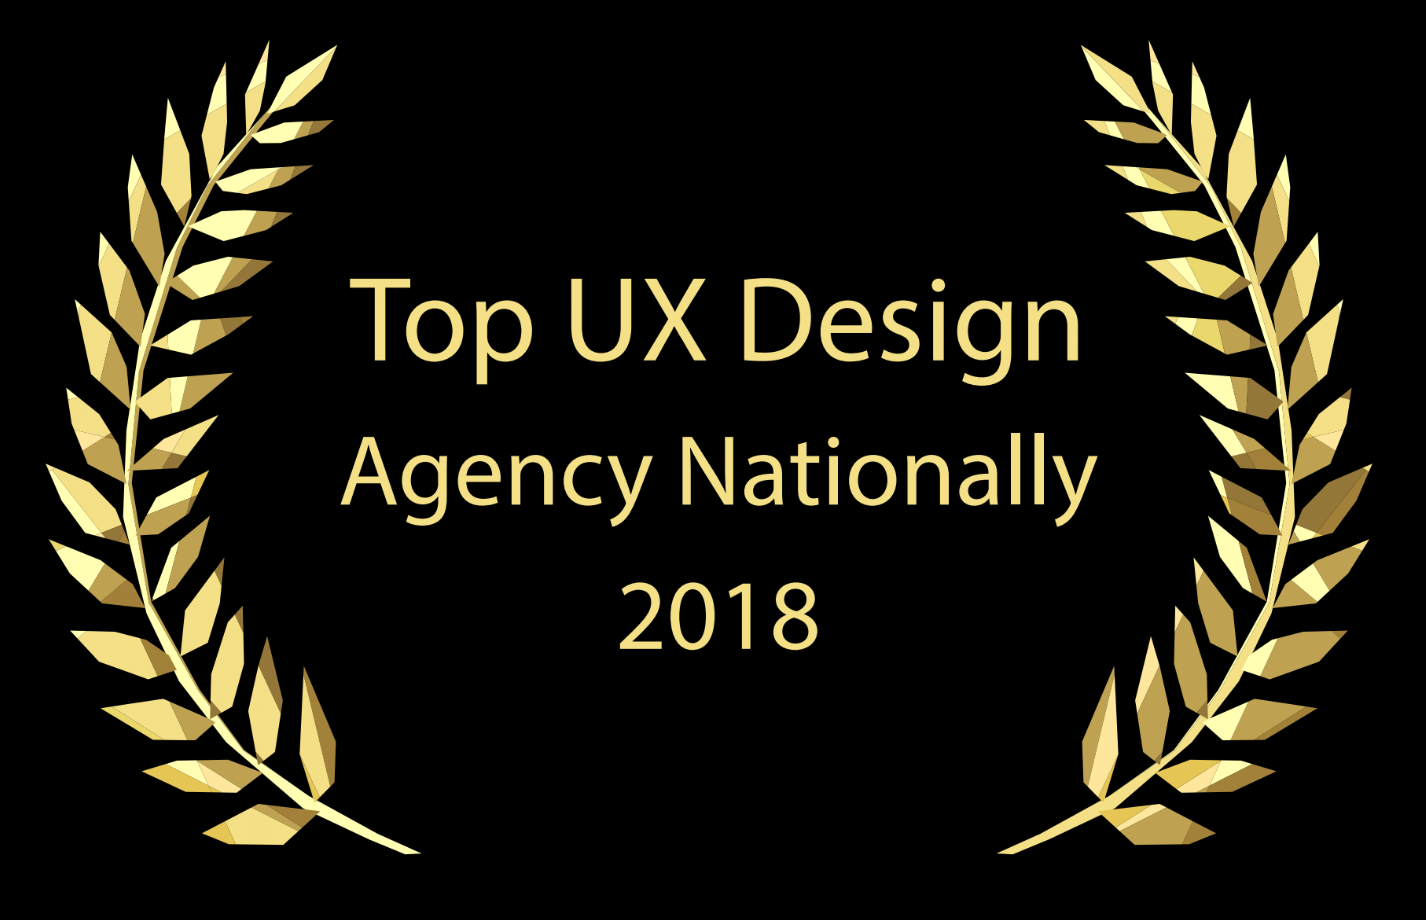 Best UX agency award